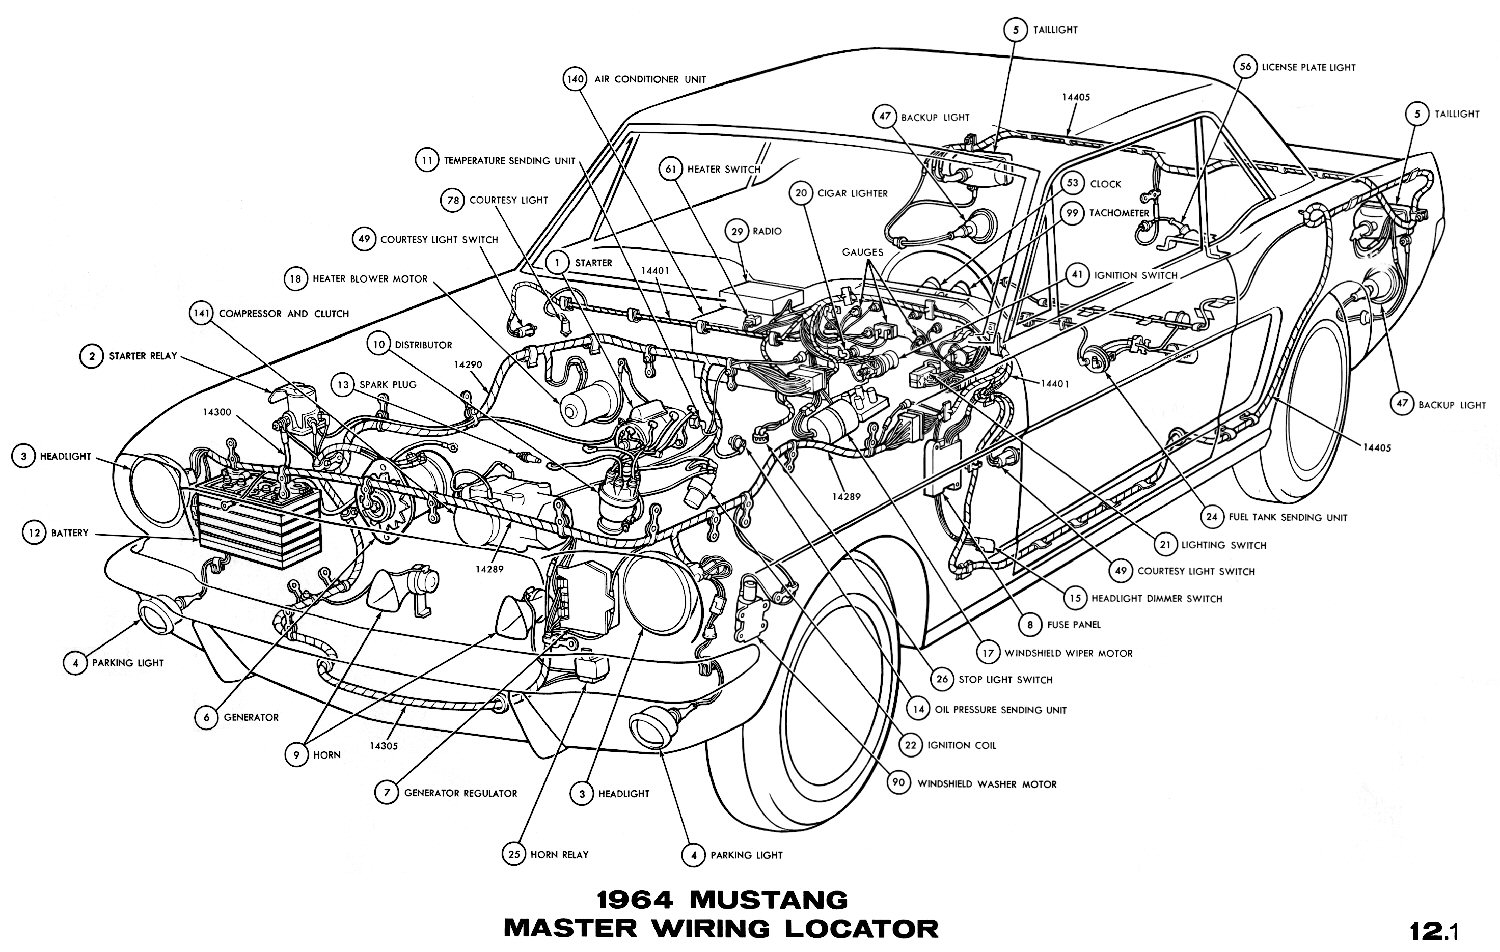 1964 Mustang Wiring Diagrams Average Joe Restoration Courtesy Light Diagram Master Pictorial